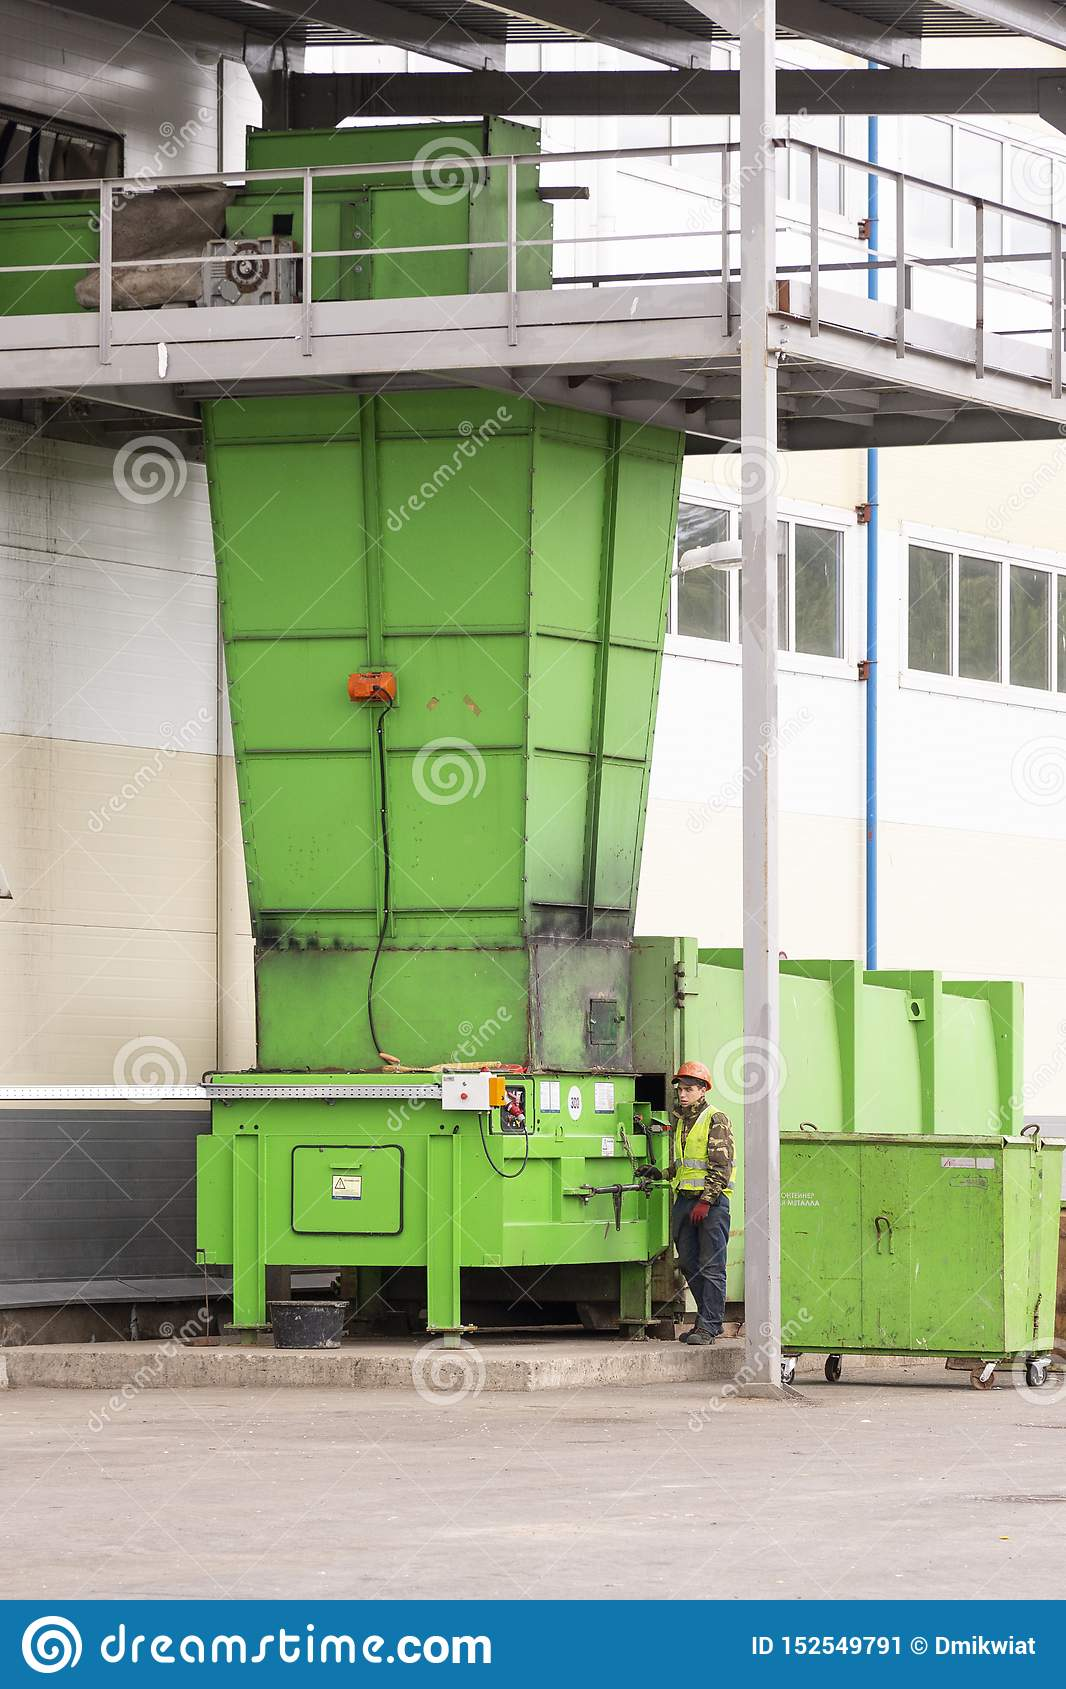 Waste processing plant. Technological process for acceptance, storage, sorting and further processing of waste for their recycling